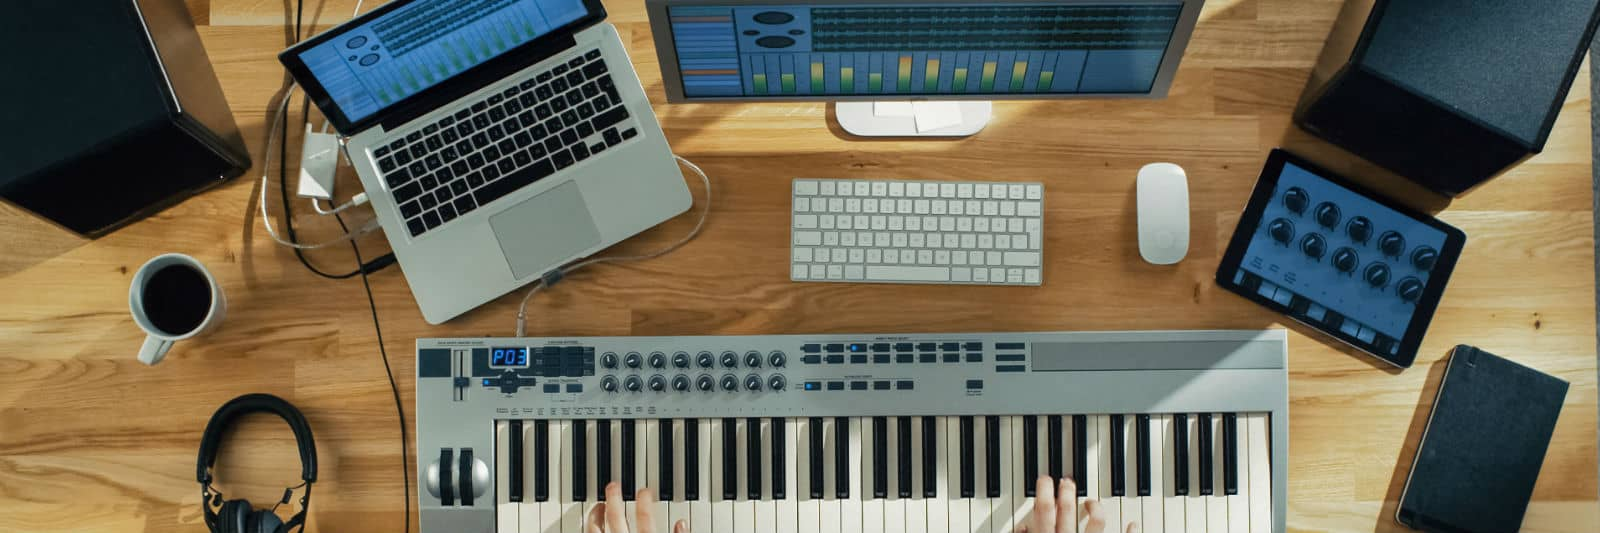 Best Computer For Home Recording Studio